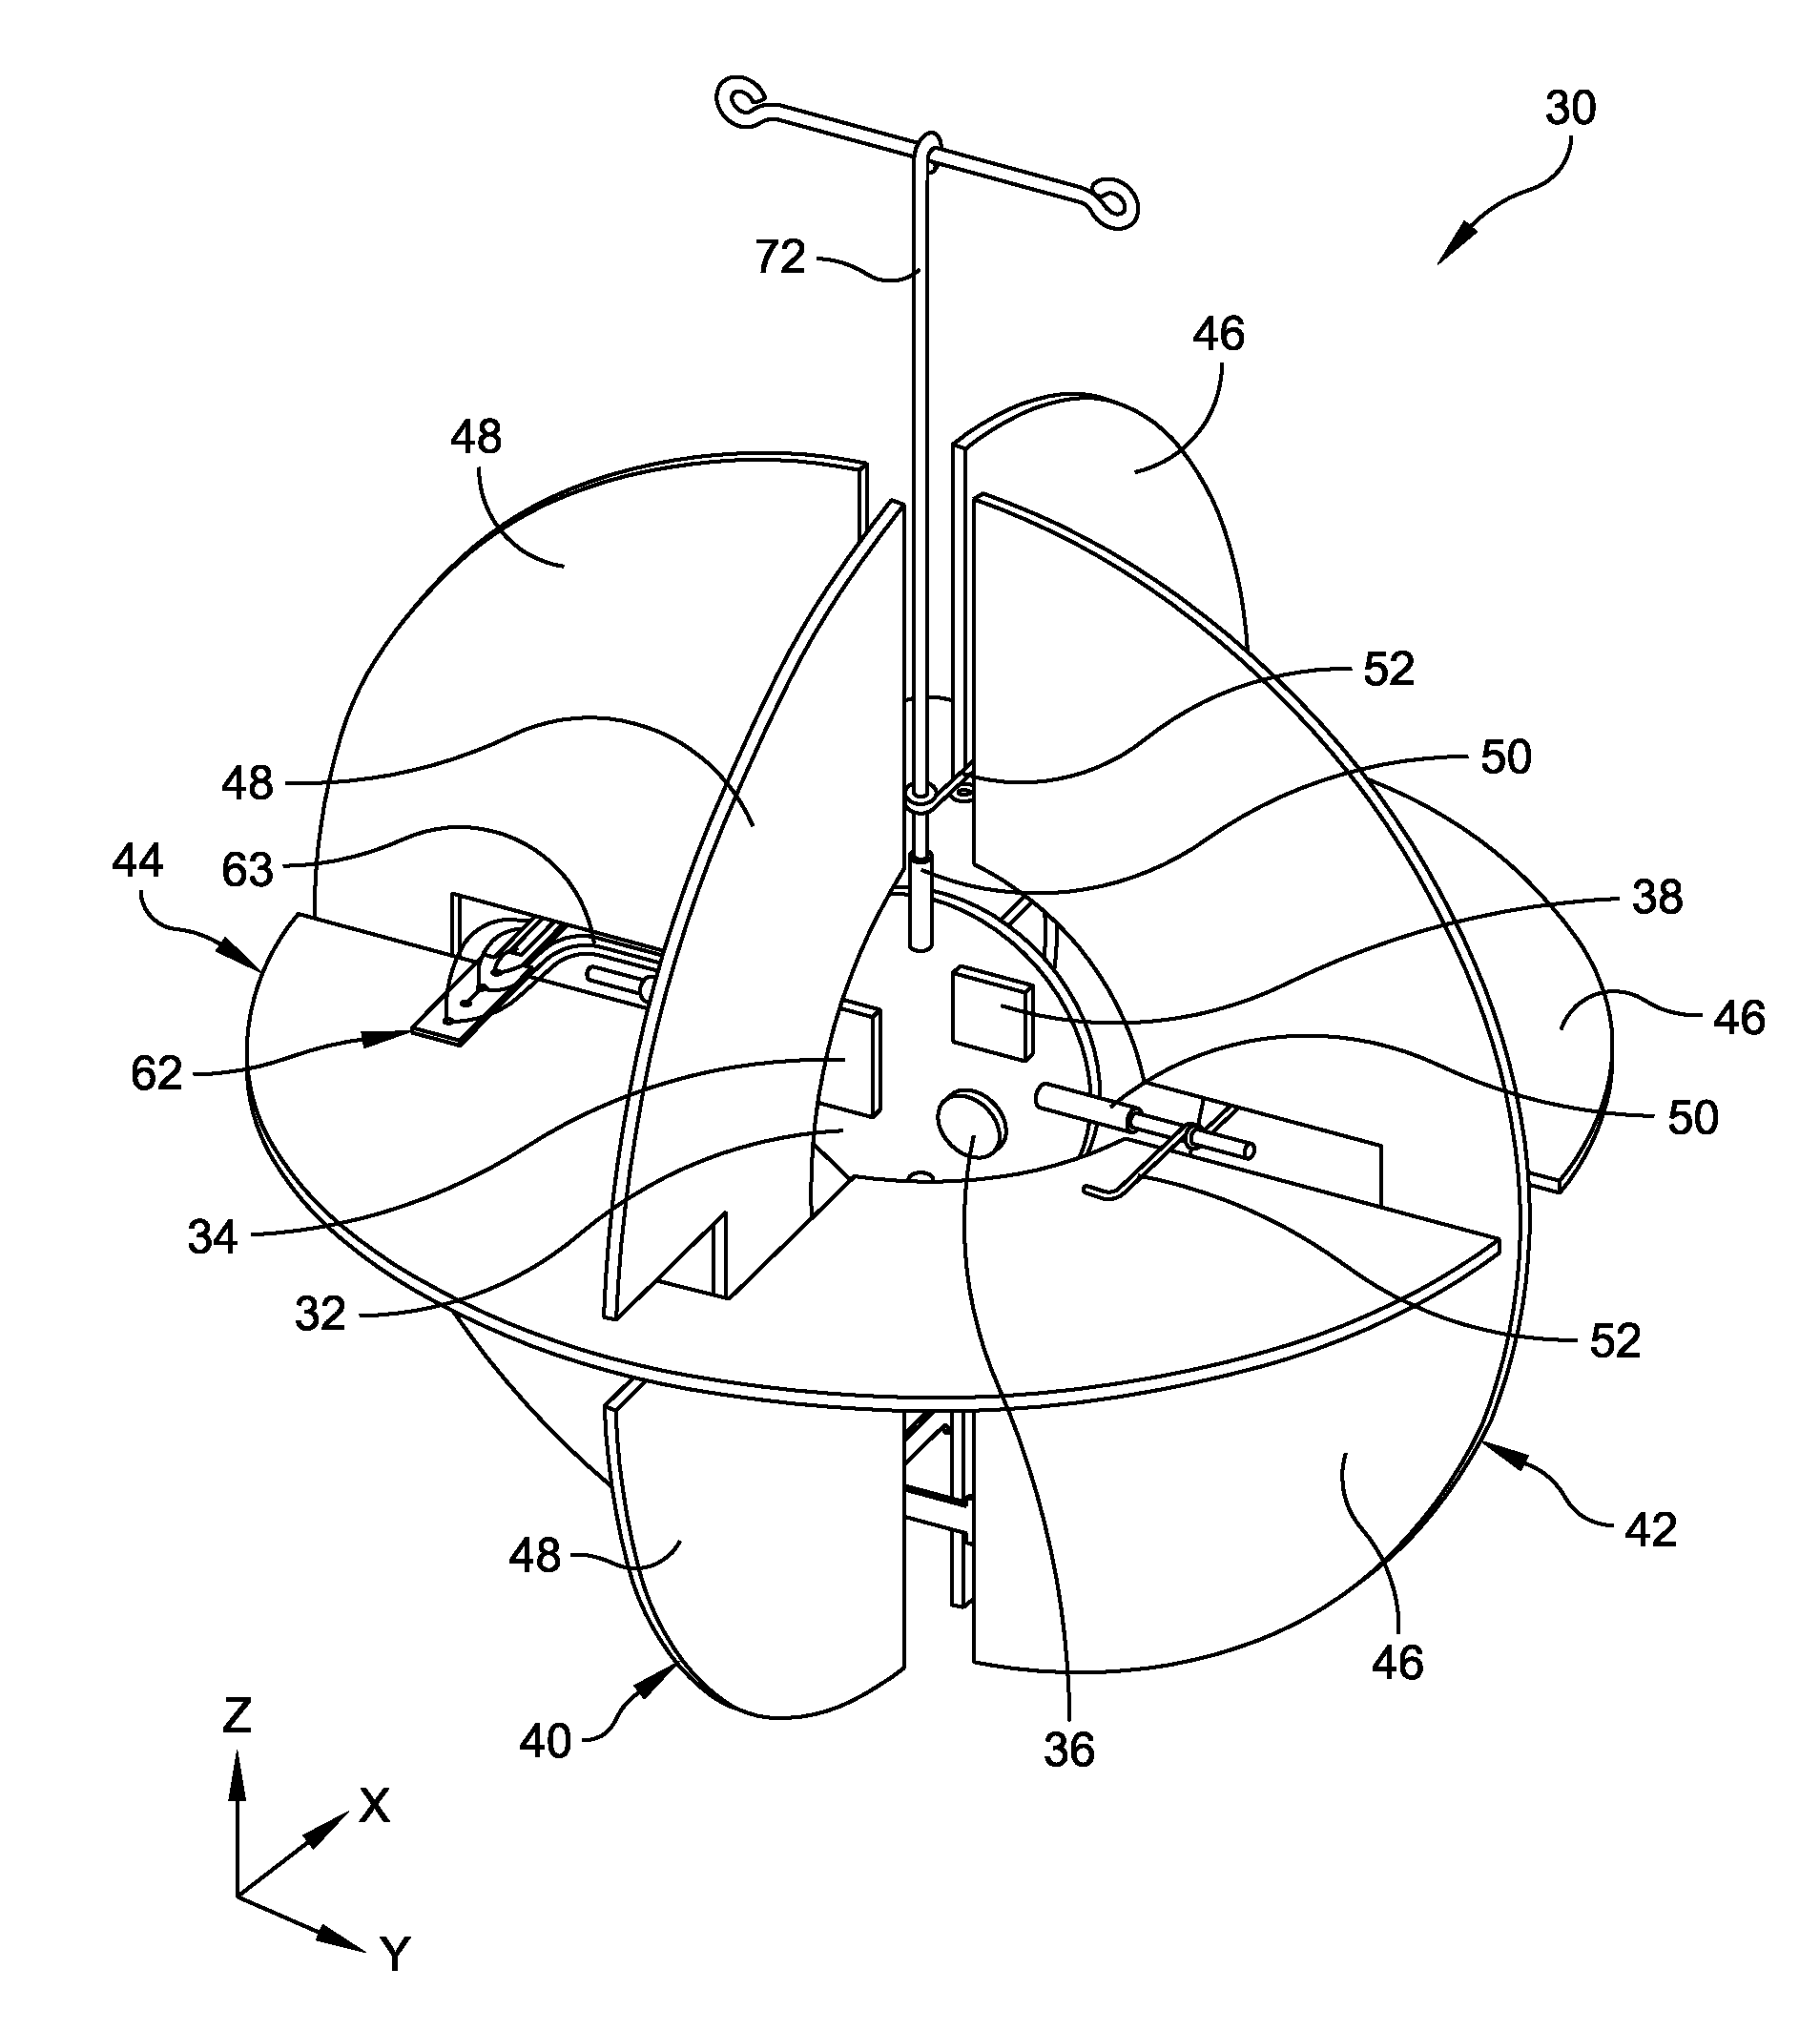 1908x2129 Patent Us8407004 Airflow Detector And Method Of Measuring Drawing